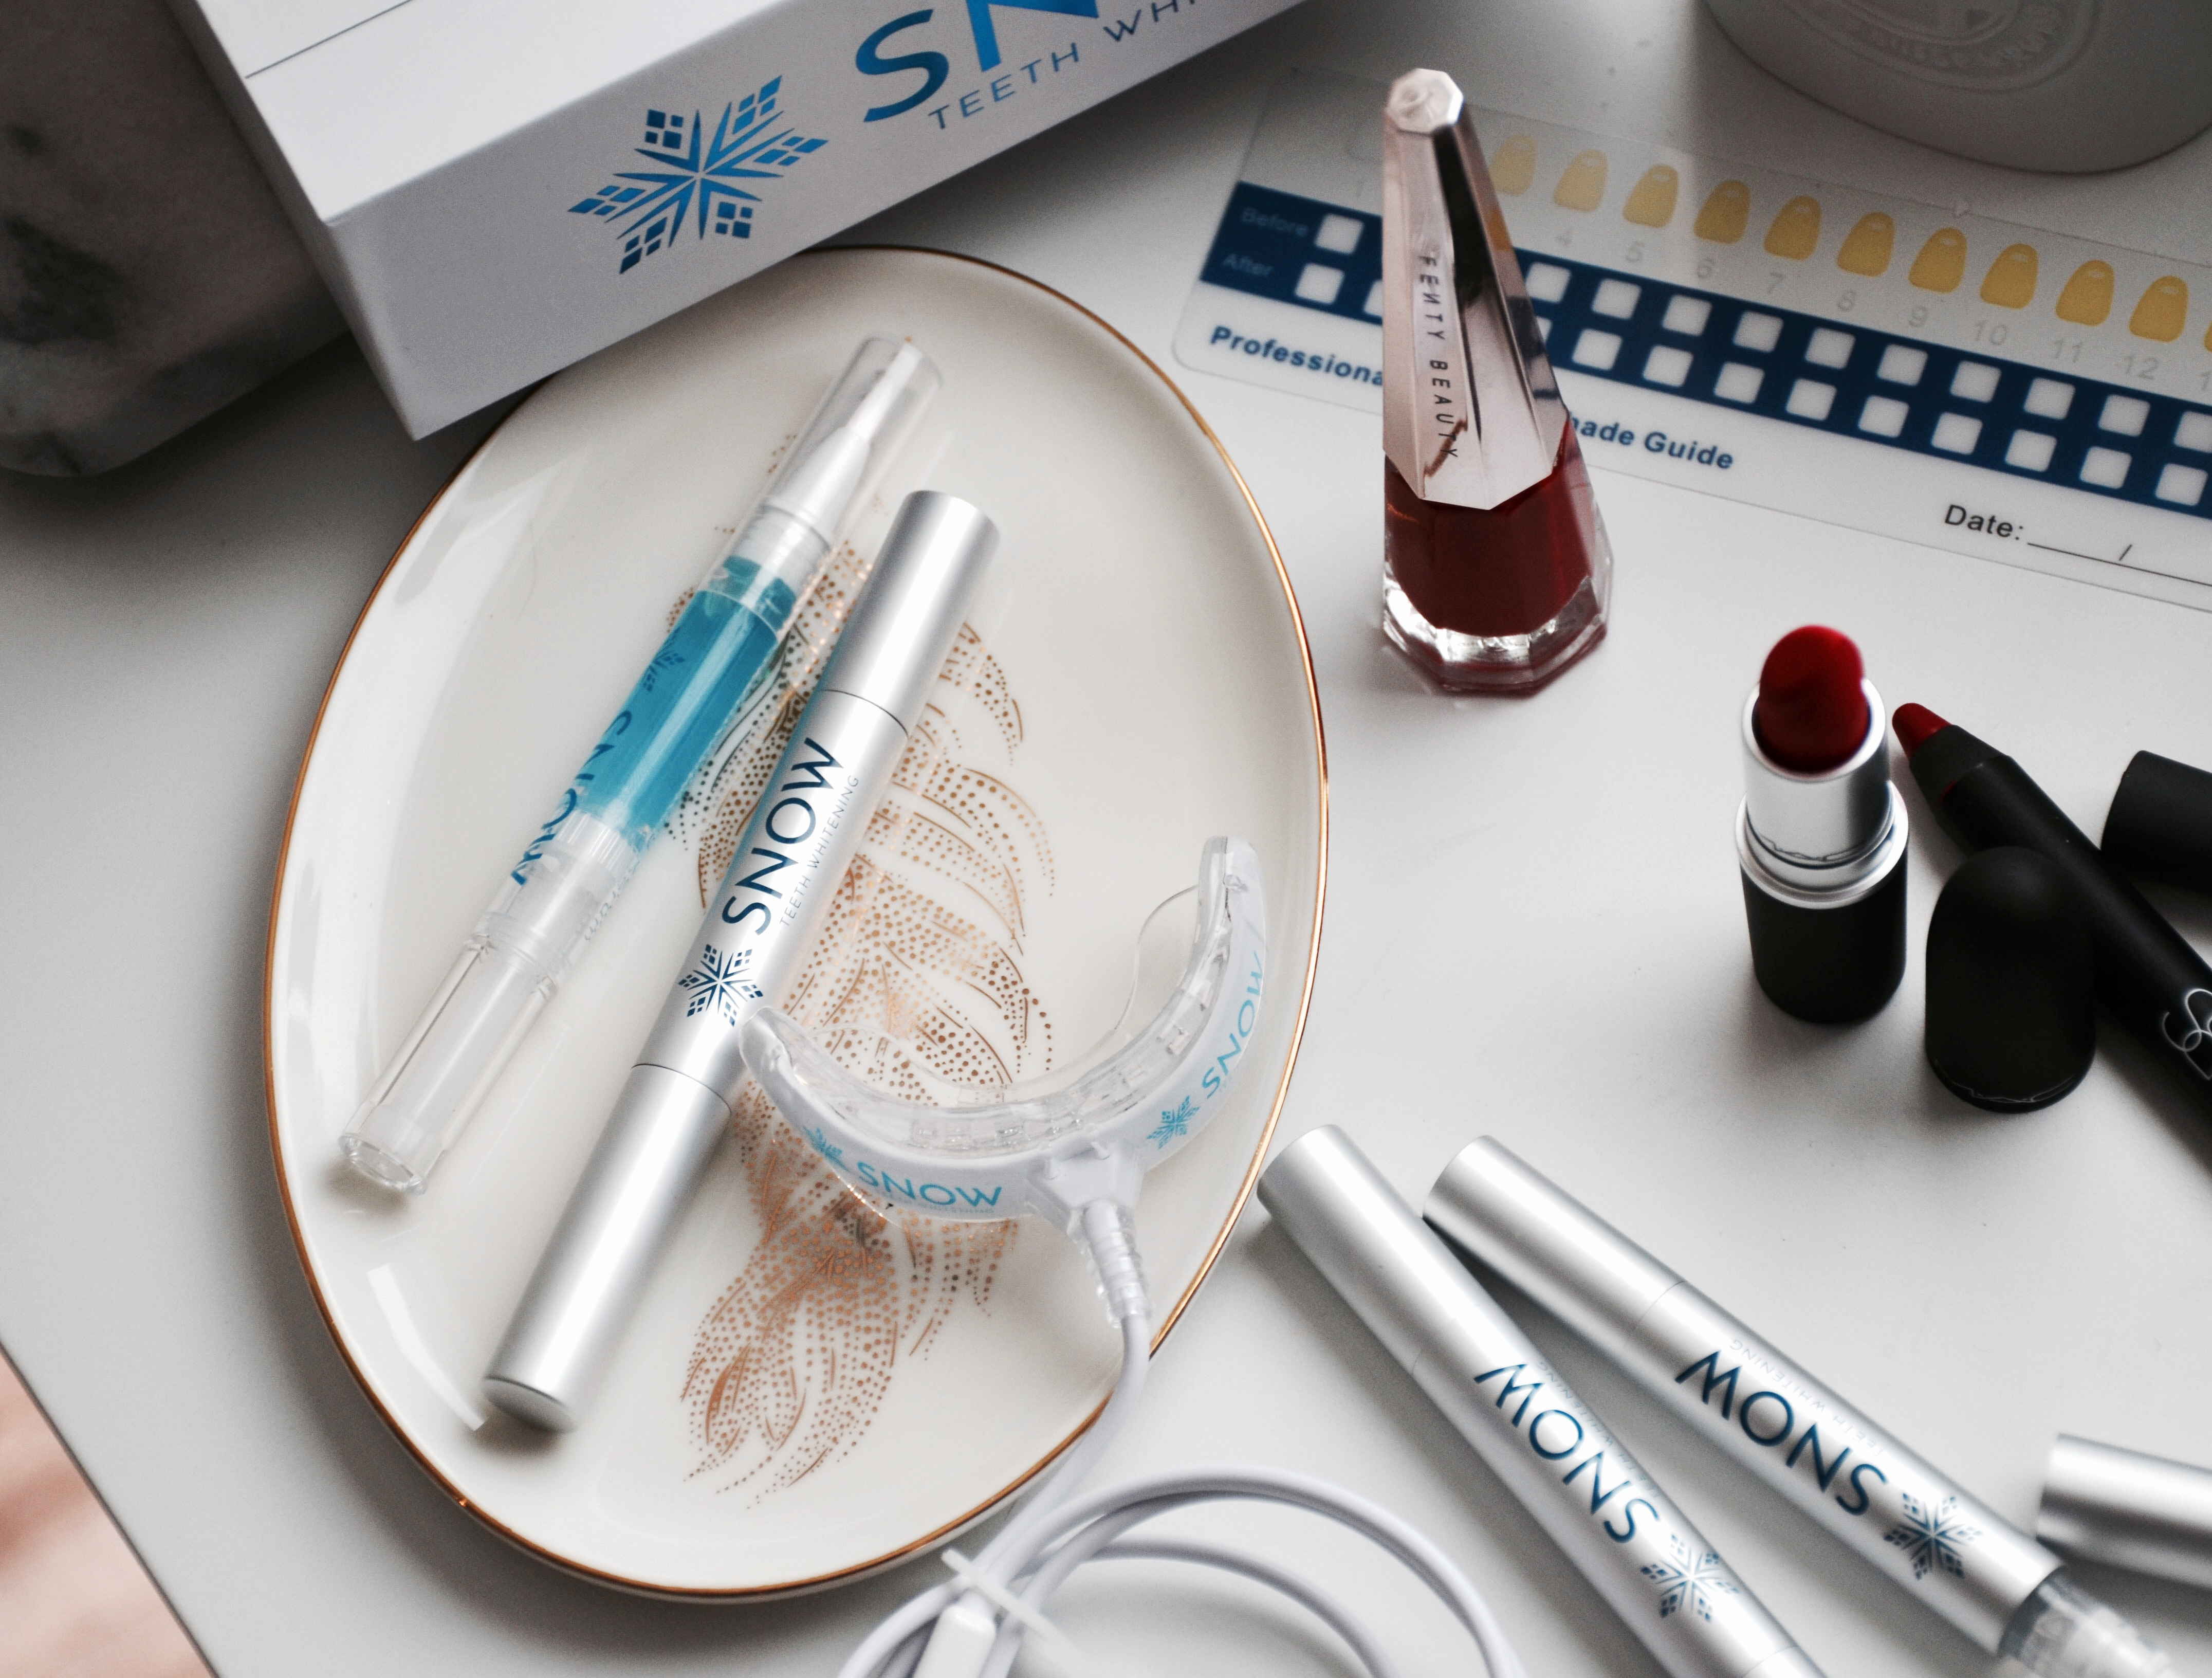 Snow At Home Teeth Whitening Kit Review Makeup Sessions